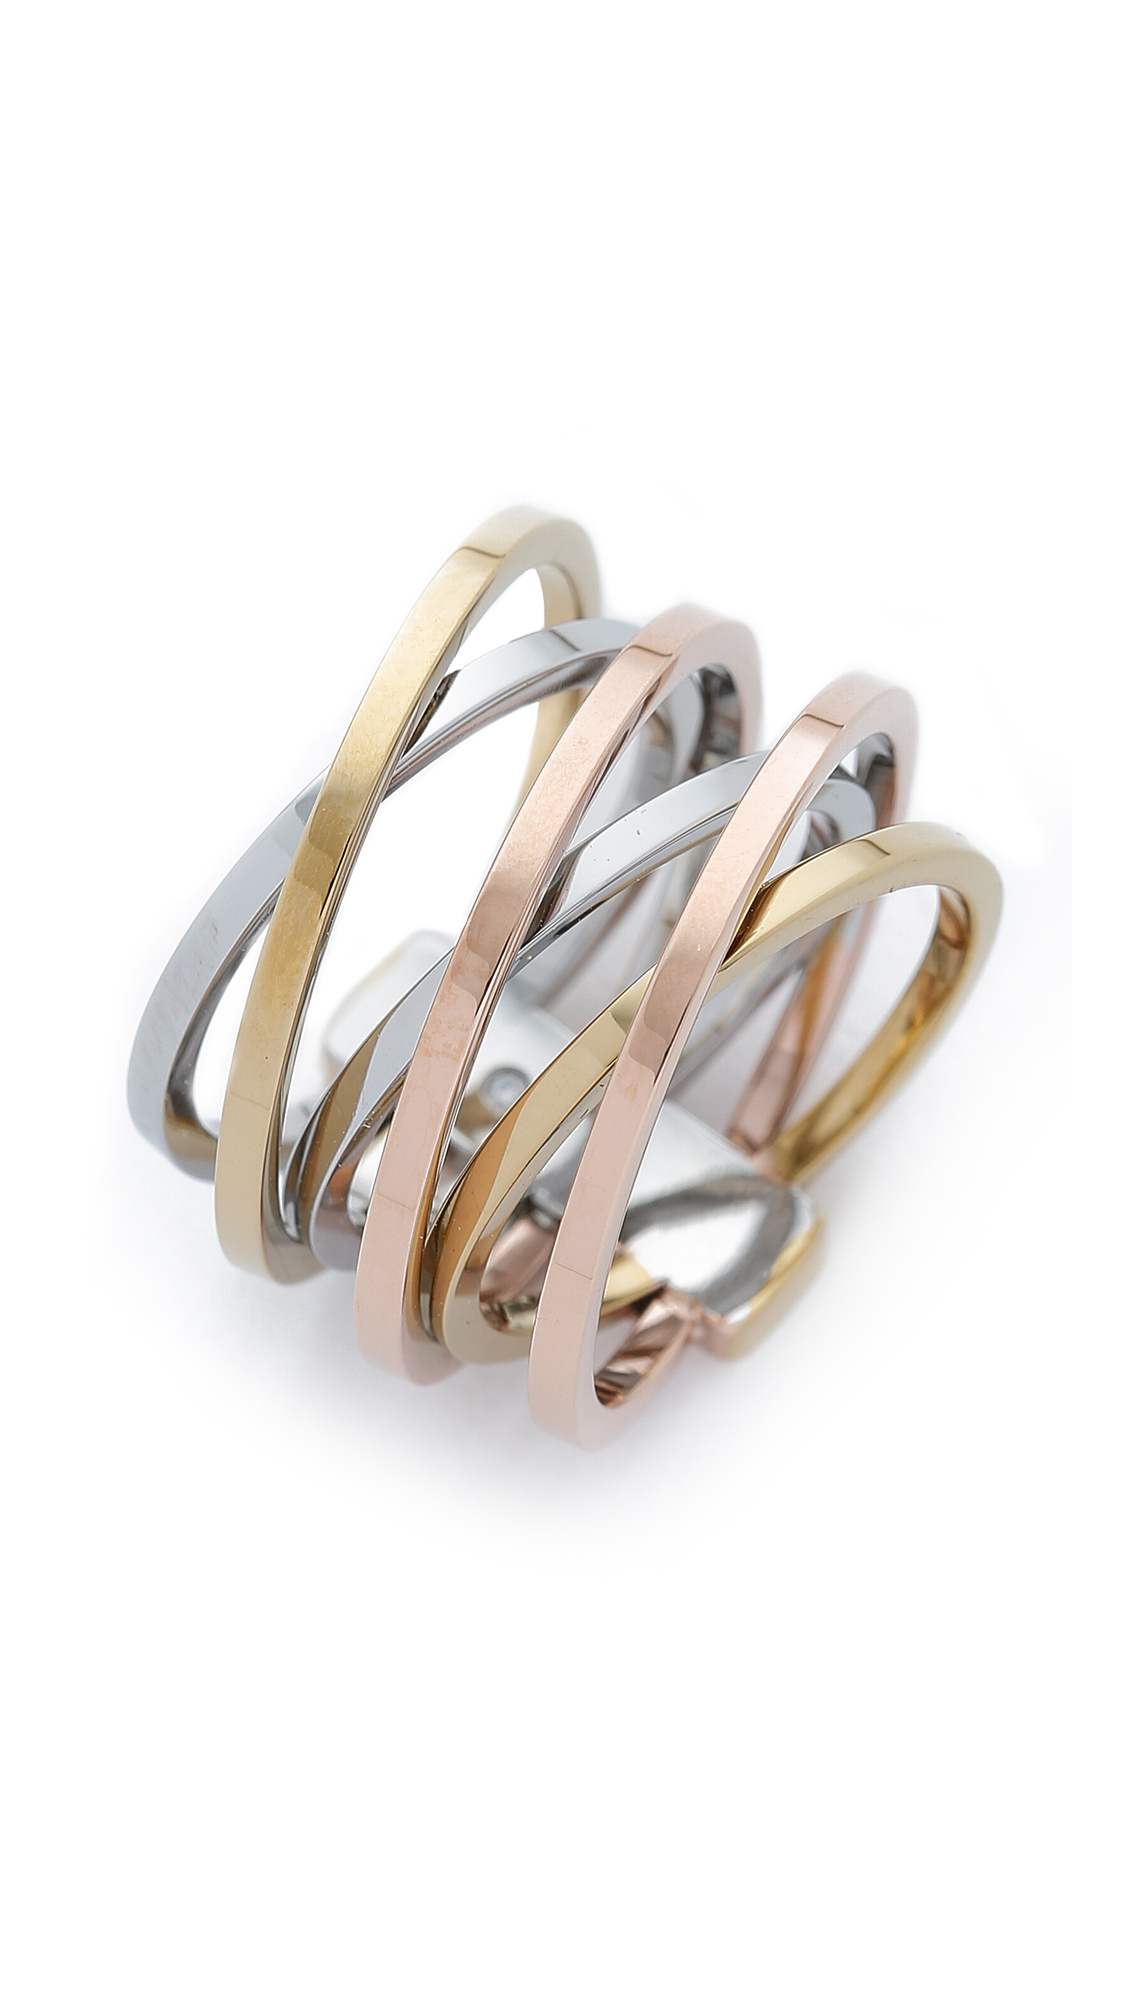 tritone twisted rings jewelry gold tri silver kors tone michael gallery product lyst ring multi